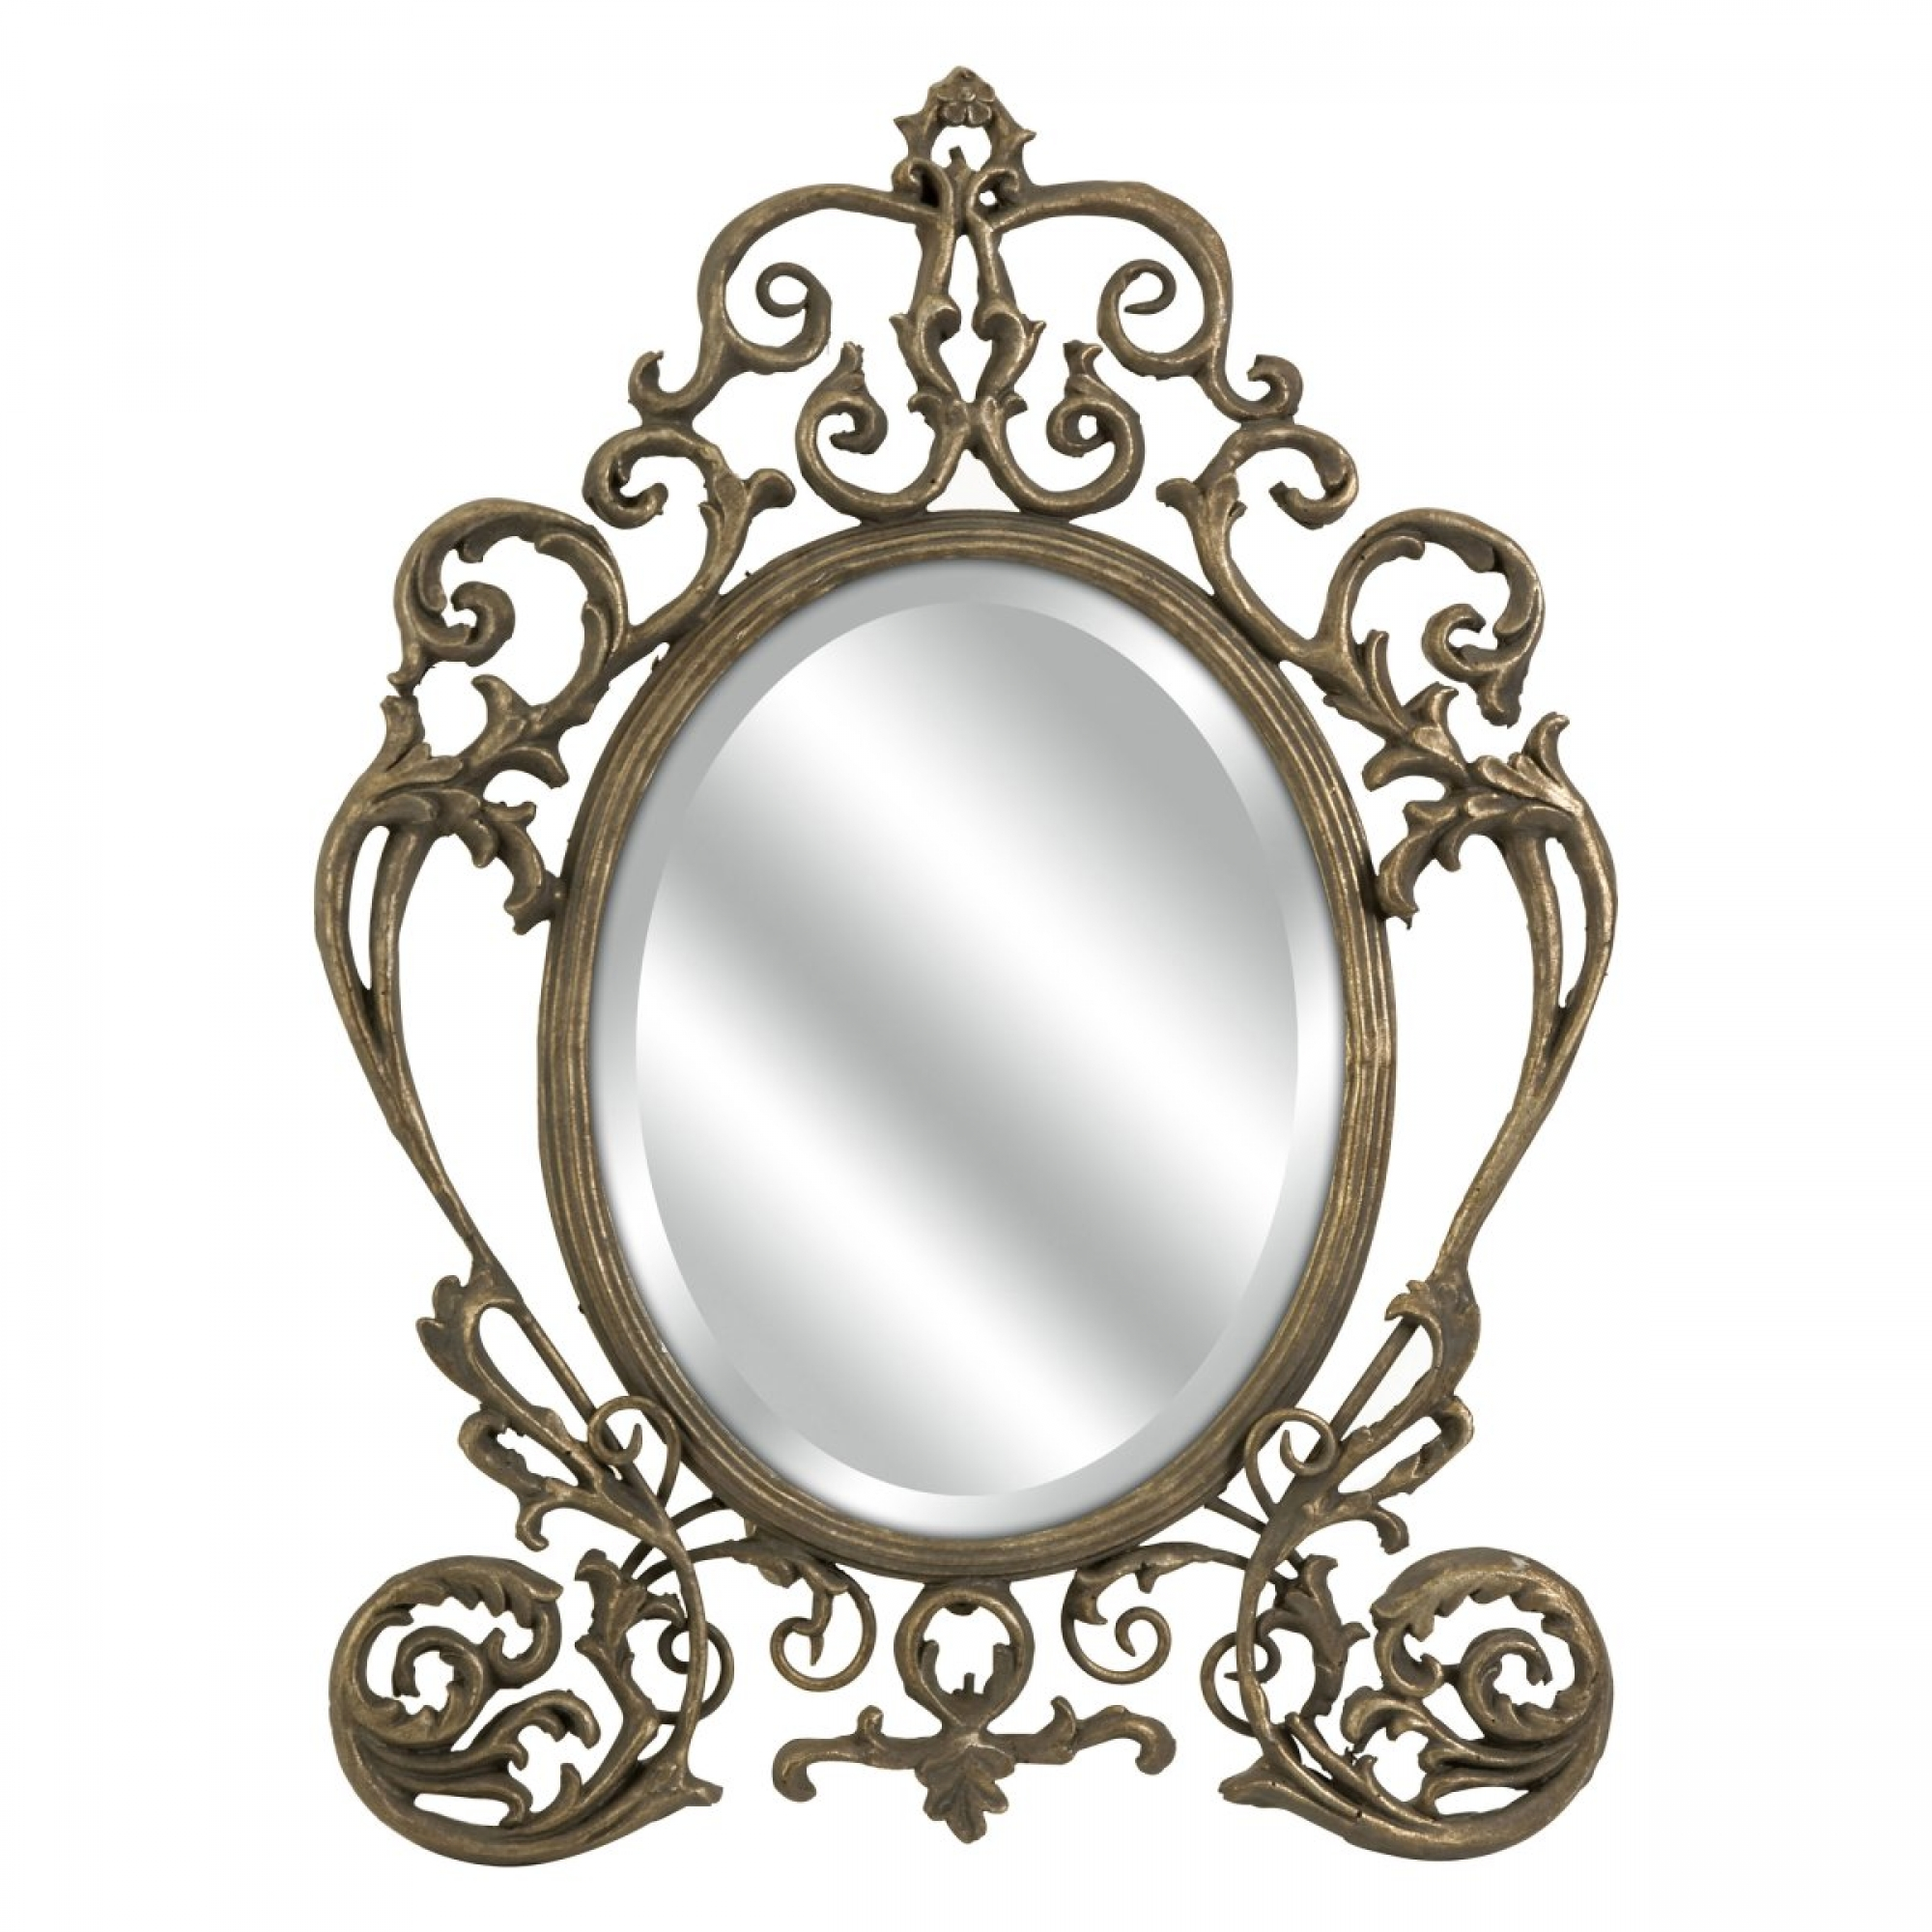 Wall Art In Mirror Frame : Vintage mirror clipart suggest